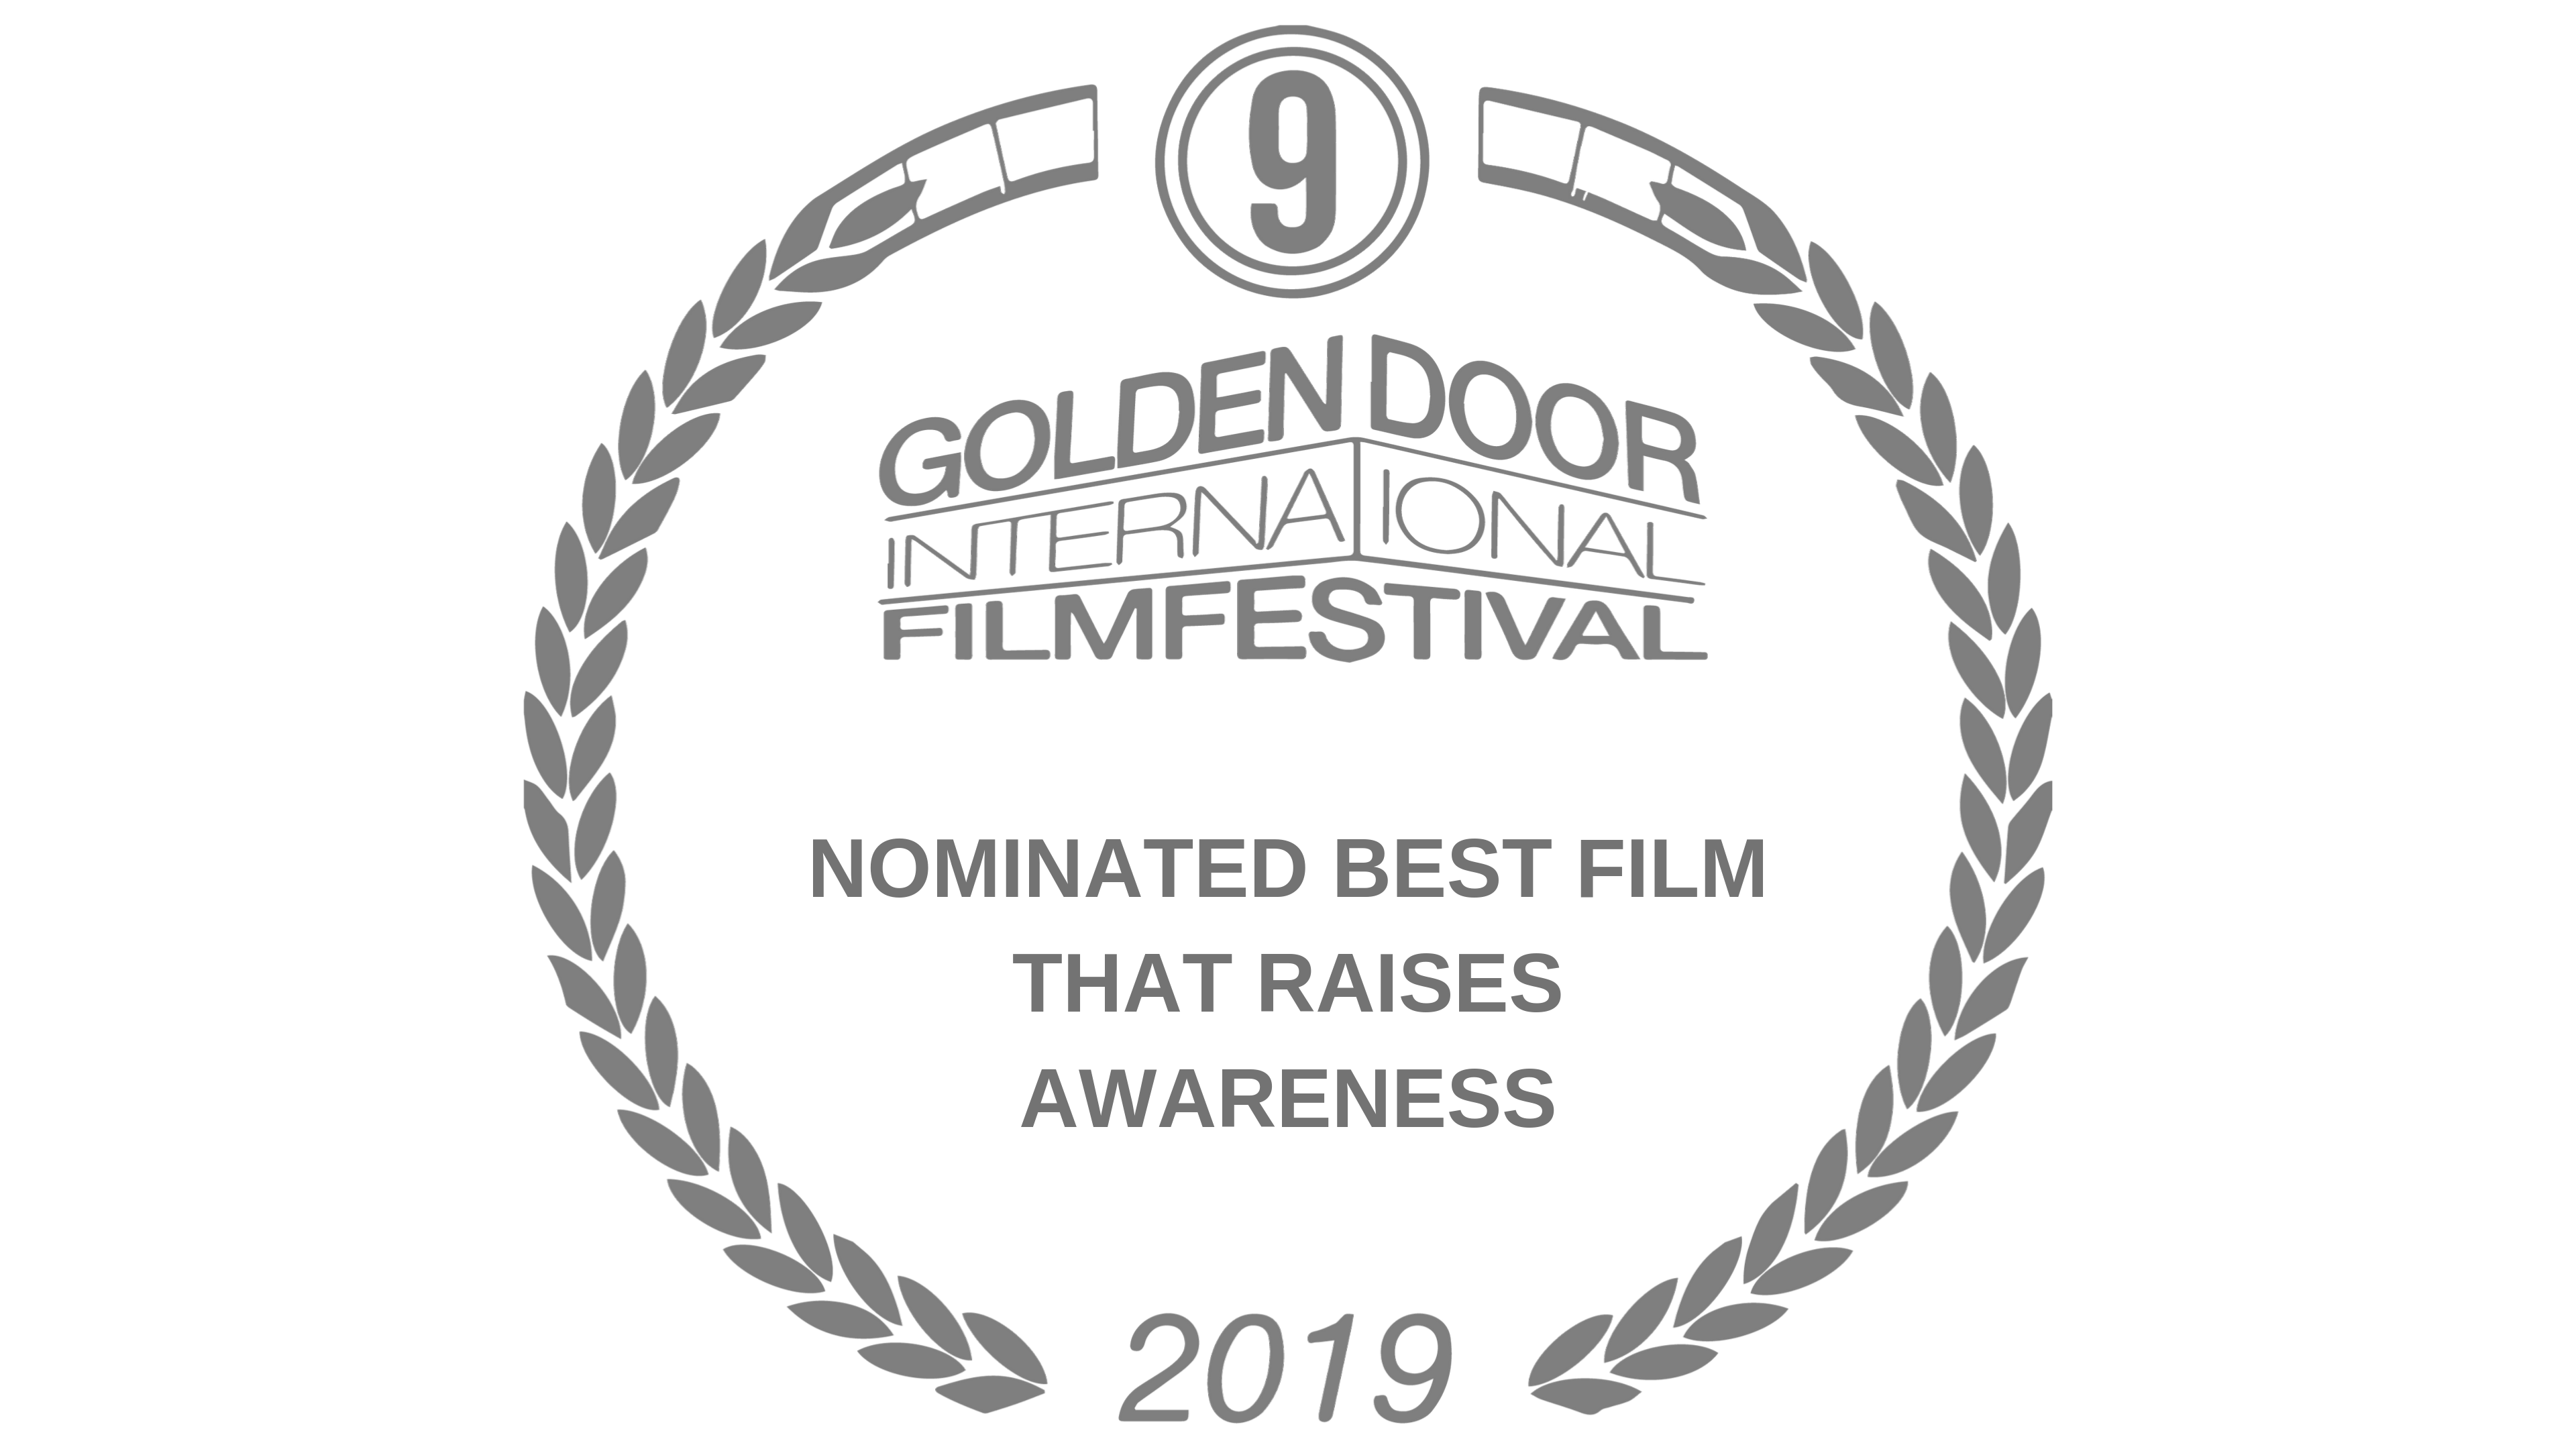 20191004A - Best Film Raises Awareness - Awards Only - GDIFF - LIKE US Movie - FSPAP - THISLEARNING